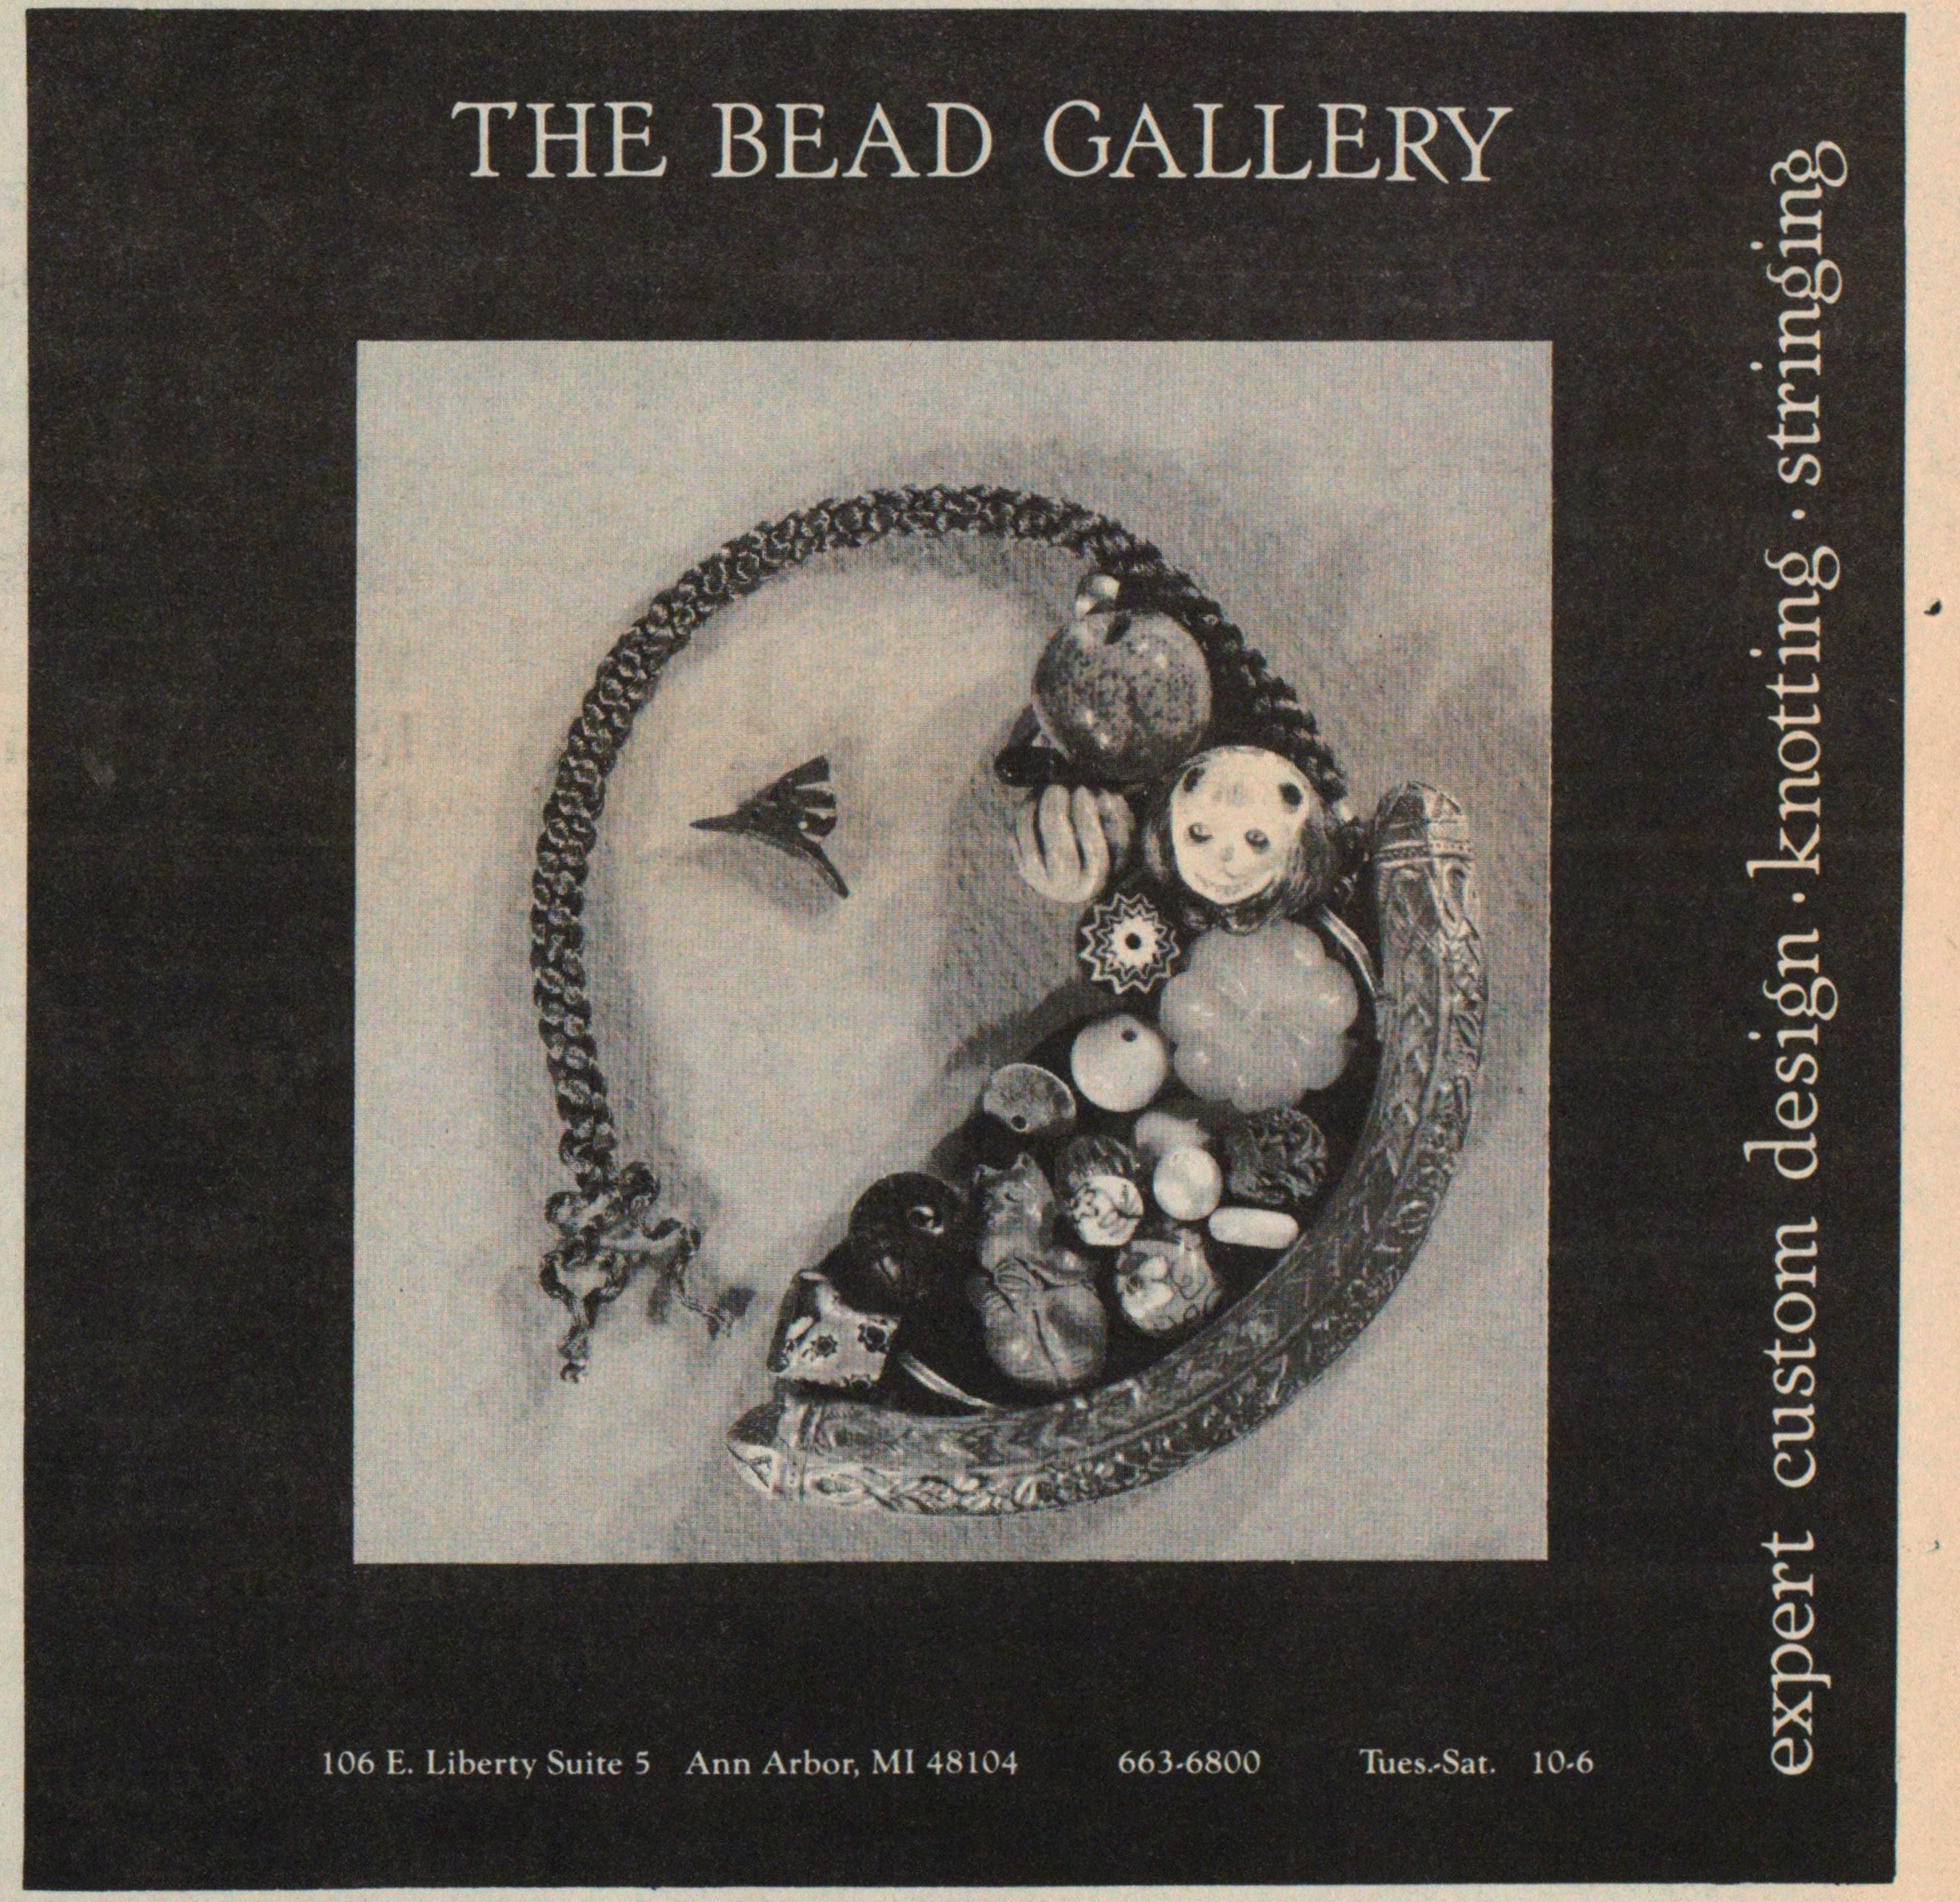 The Bead Gallery image